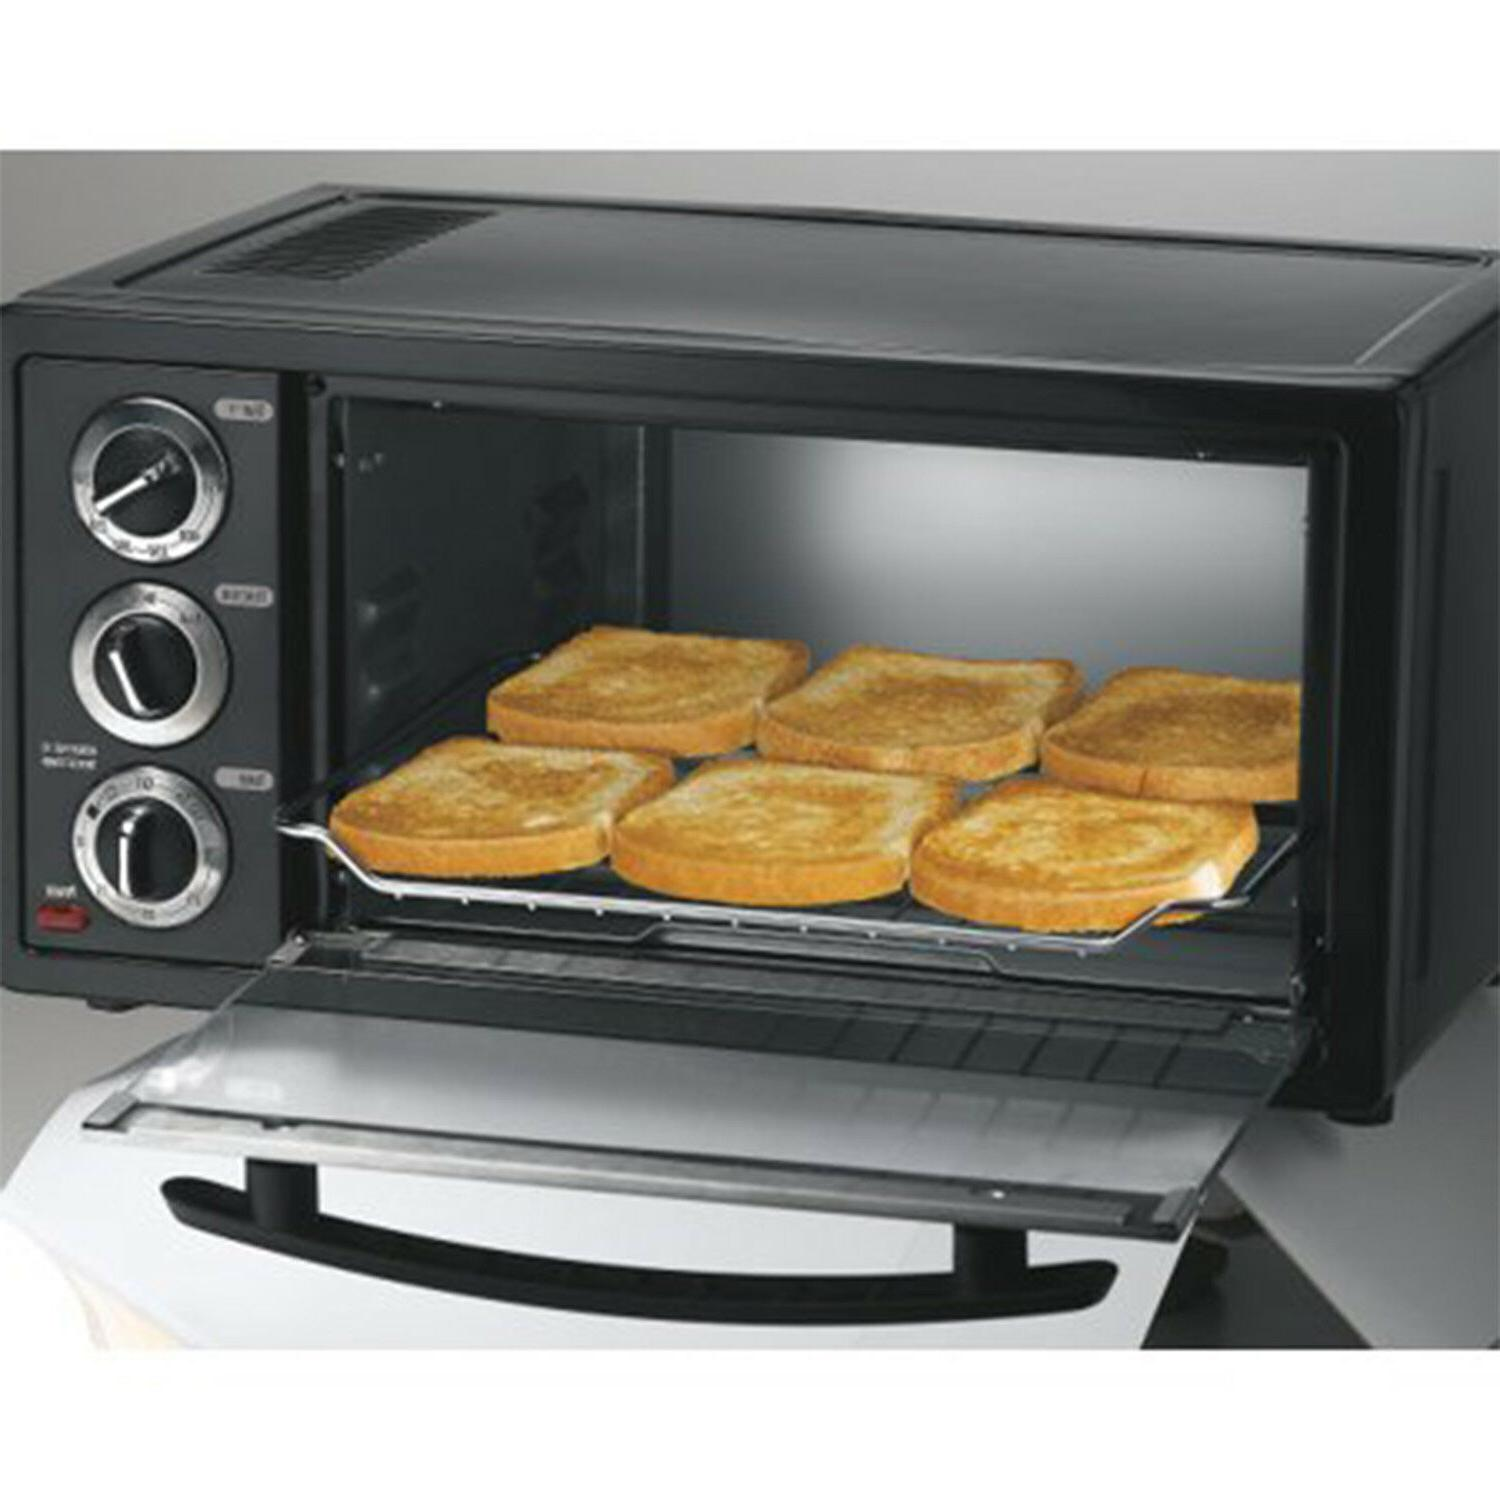 Hamilton Convection Oven Toaster Slice